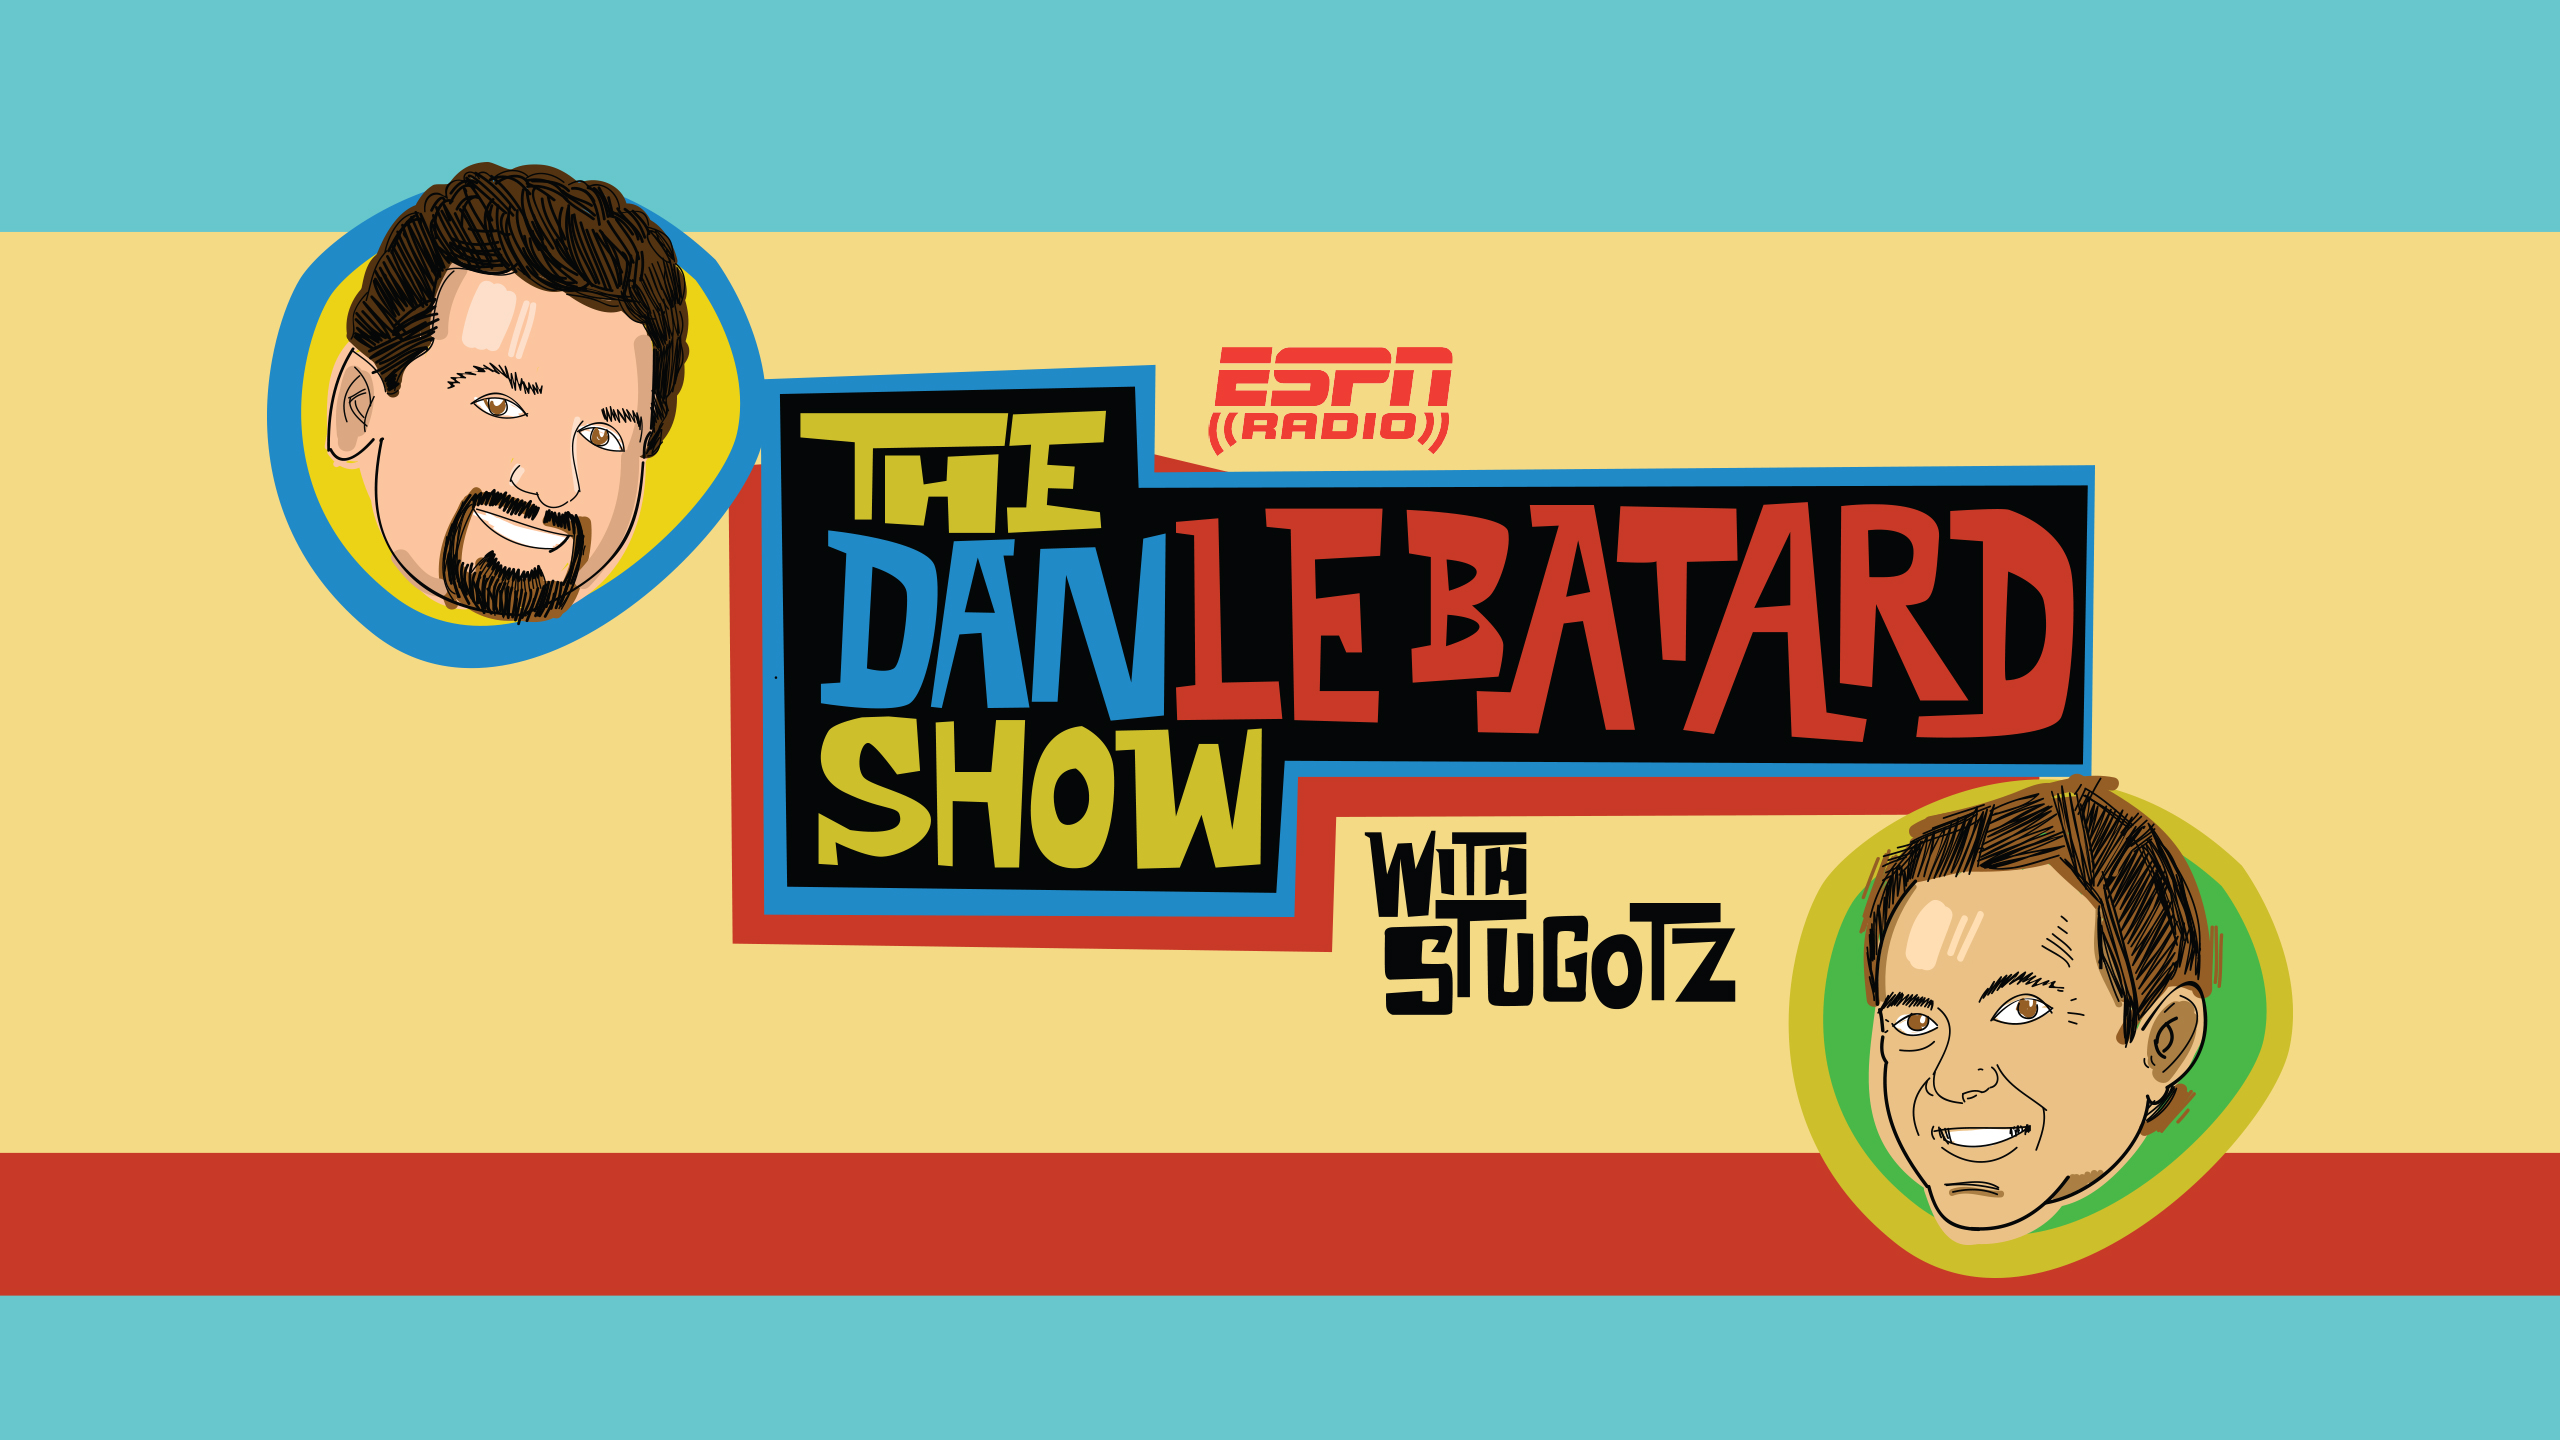 Thu, 4/18 - The Dan Le Batard Show with Stugotz Presented by Progressive